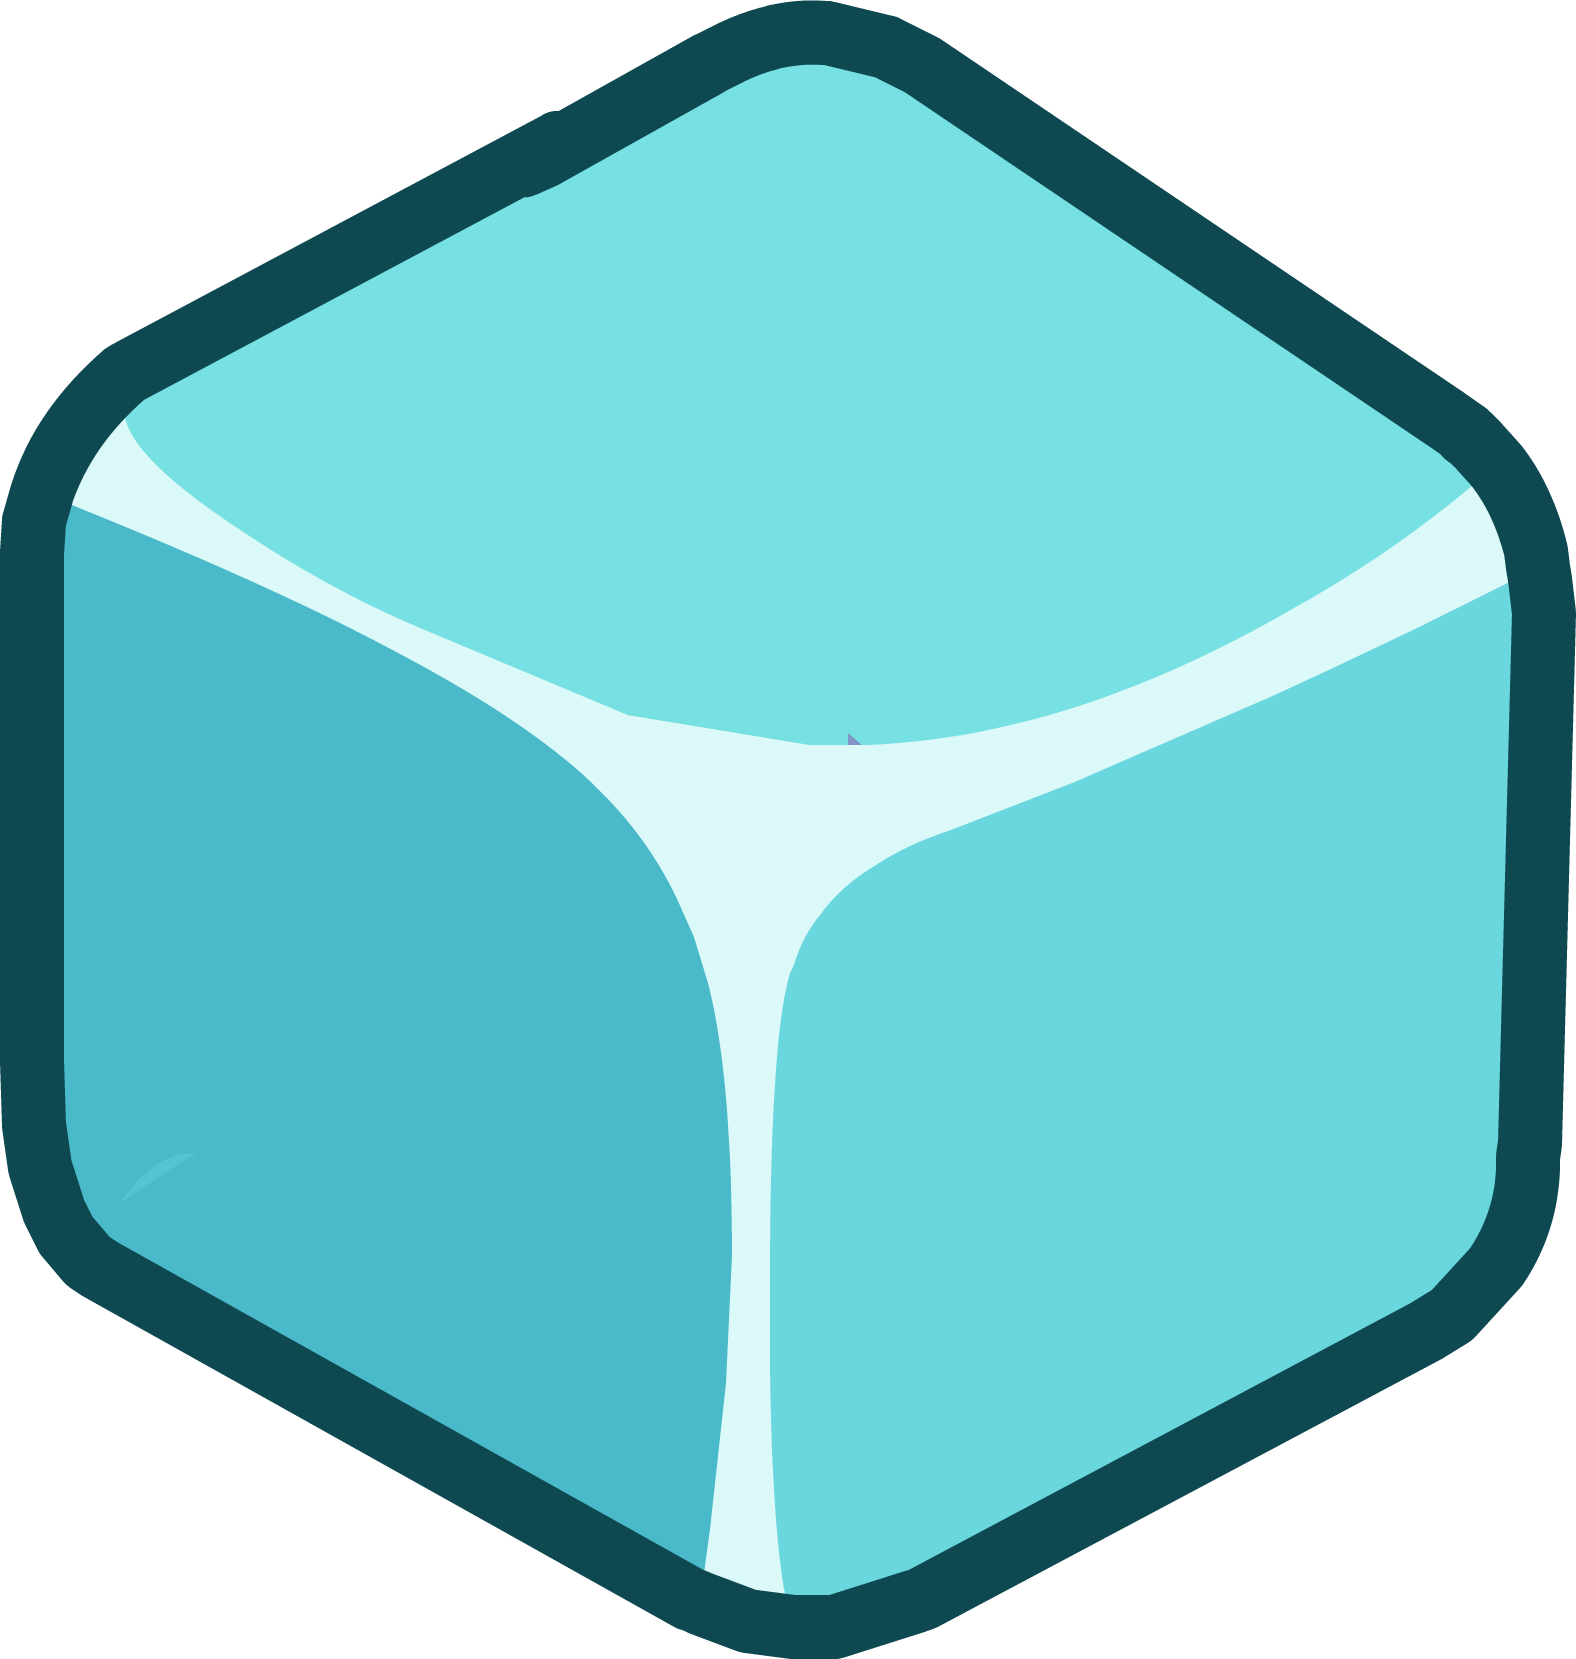 Ice block clipart png free library Download Ice Block Icon - Ice Cube Clipart Png PNG Image ... png free library